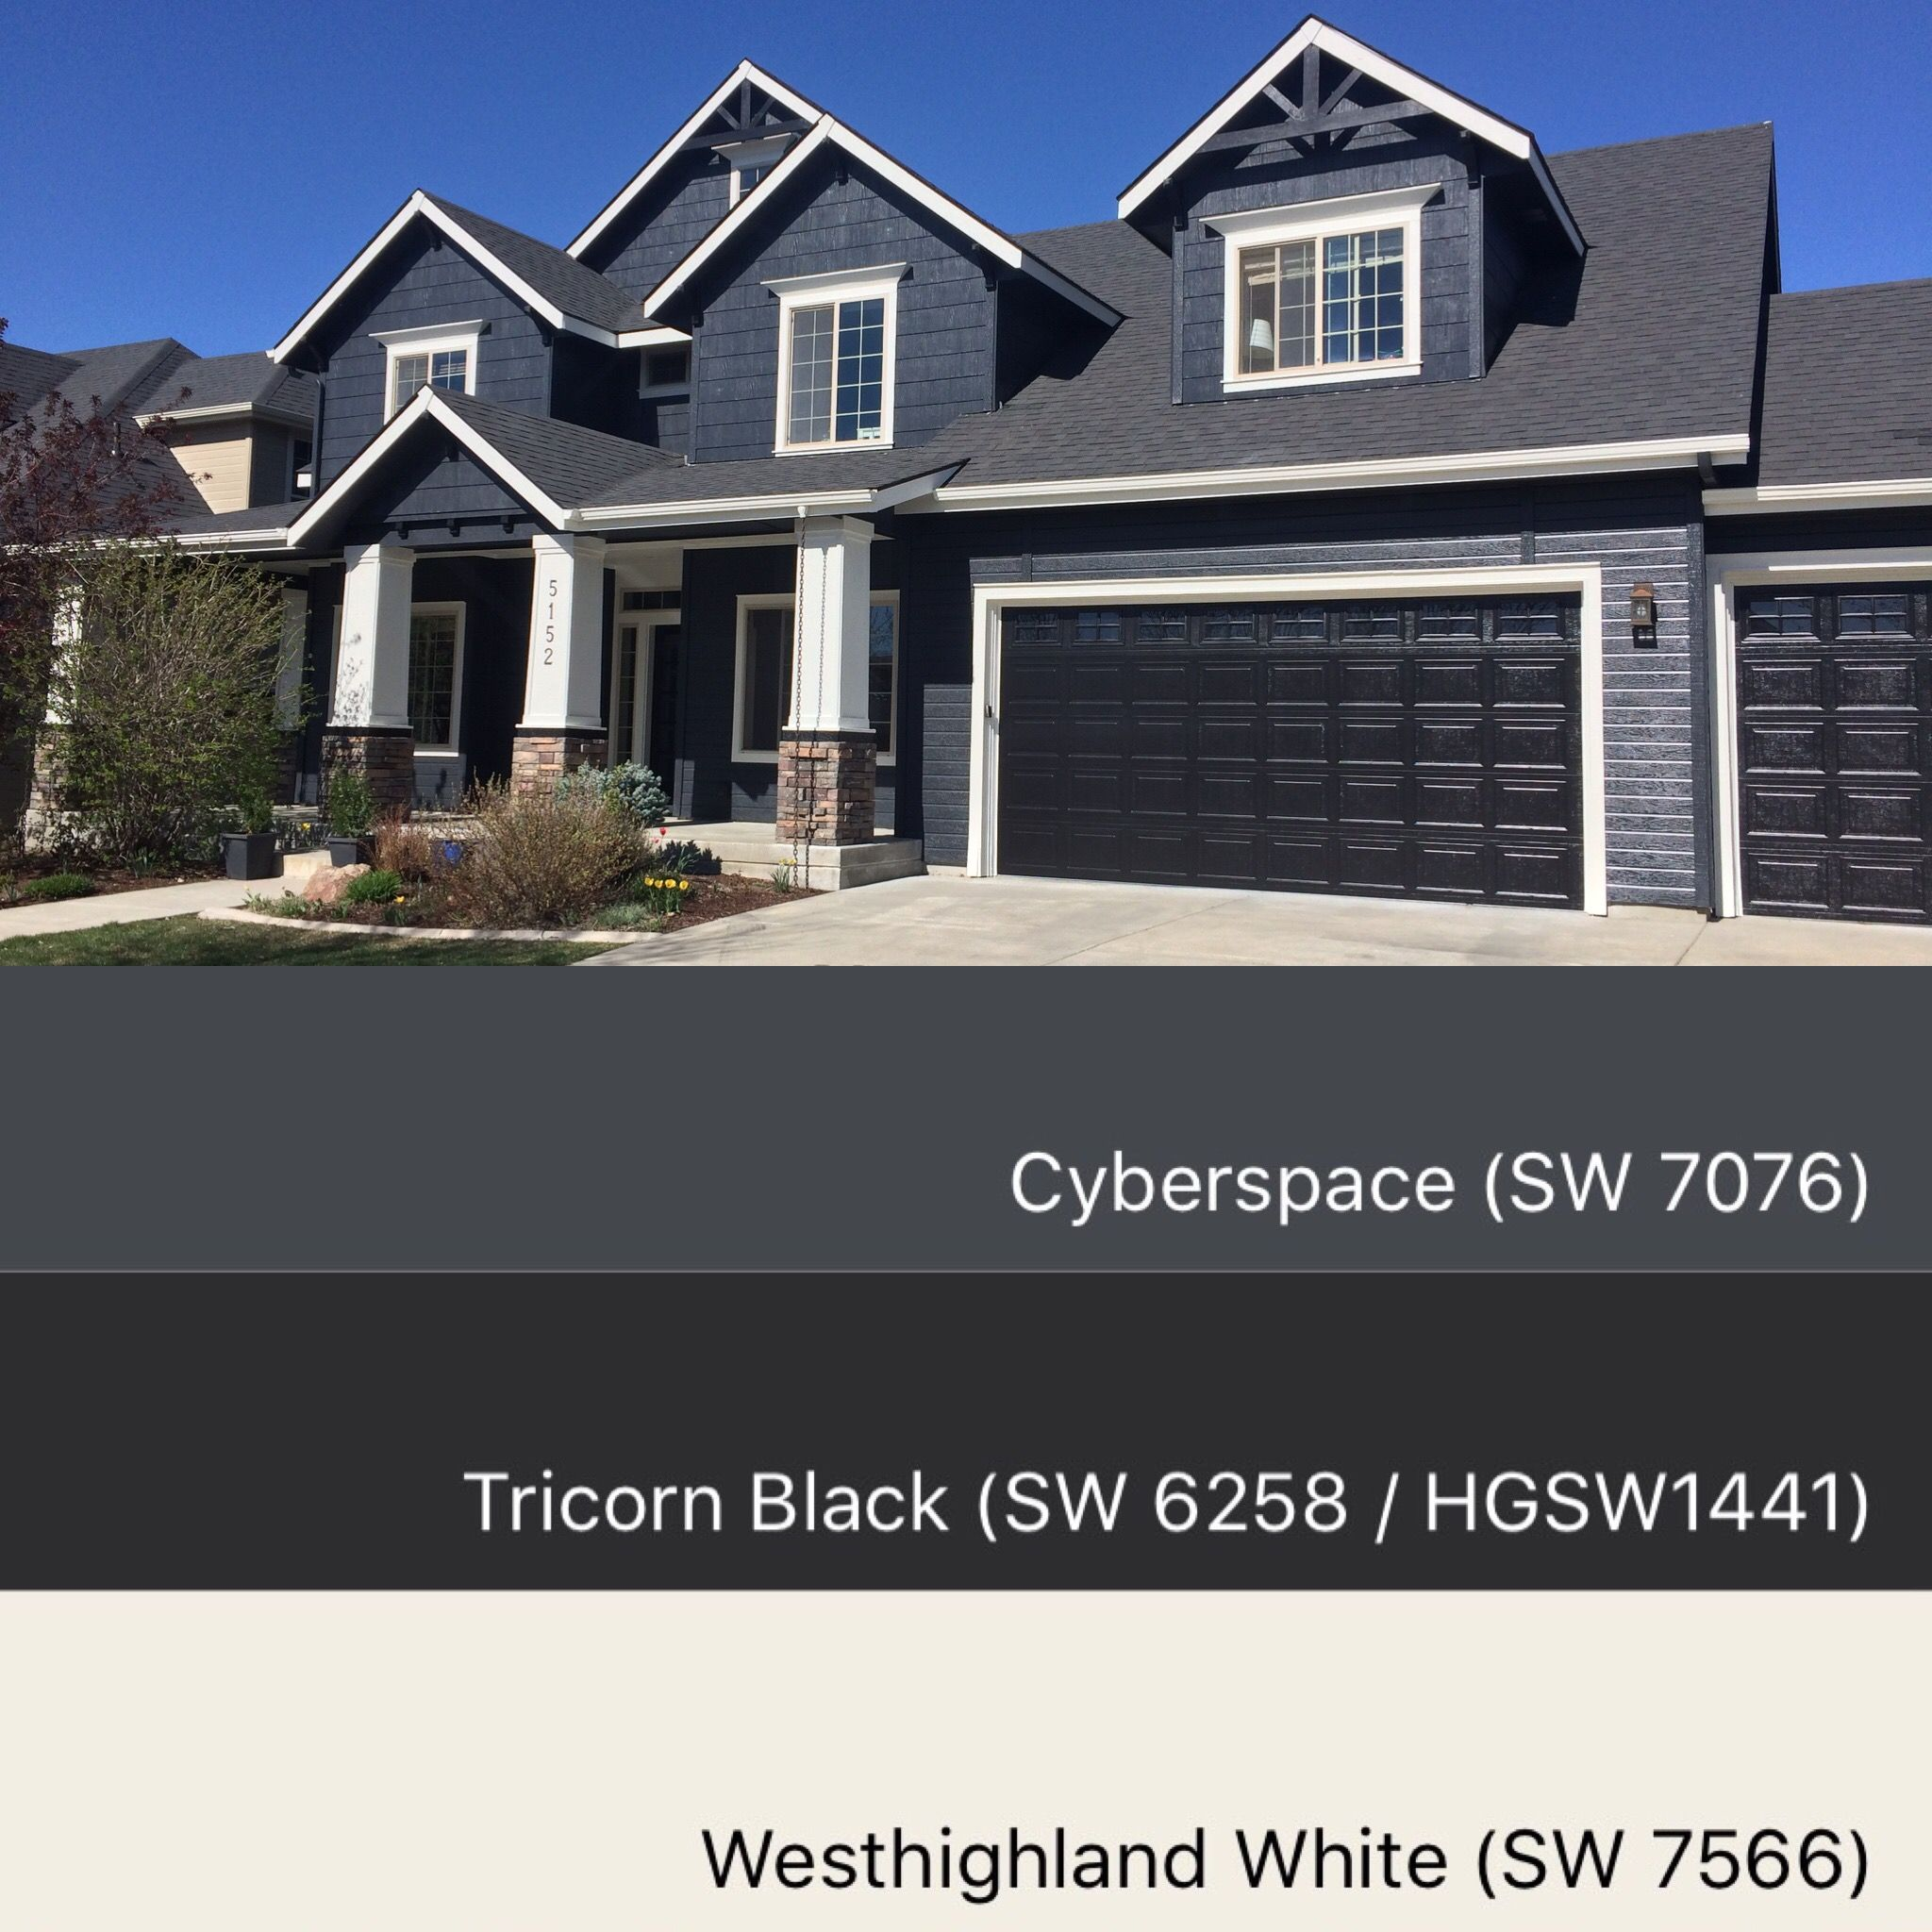 Sherwin Williams Paint Colors Cybere 7076 Tricorn Black 6258 Westhighland White 7566